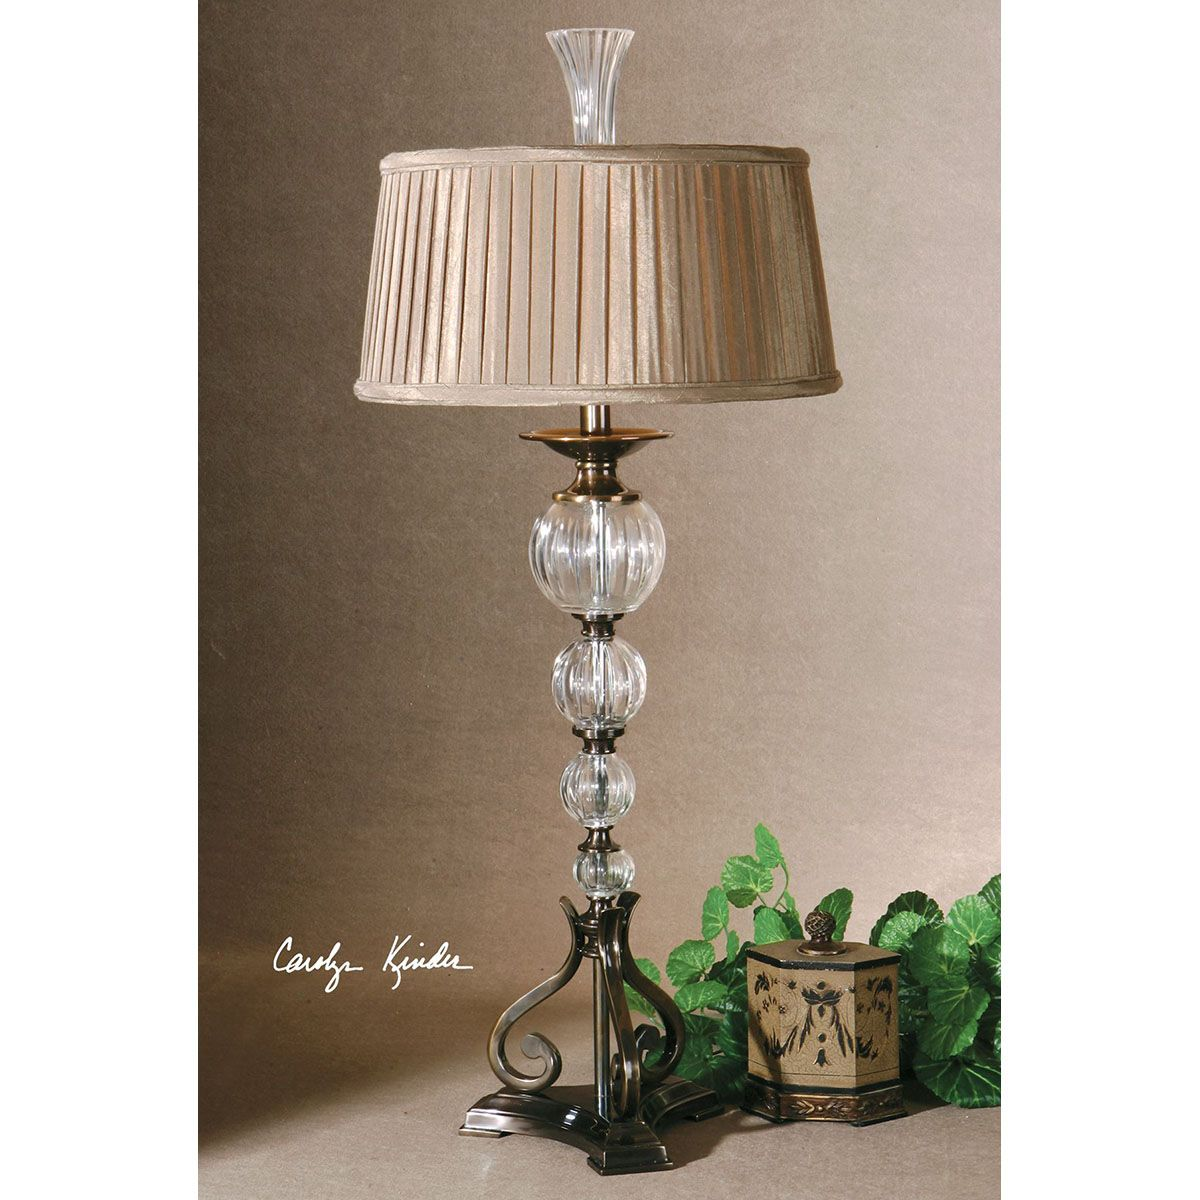 Uttermost narava crystal table lamp 26680 uttermost pinterest uttermost narava crystal table lamp 26680 geotapseo Images